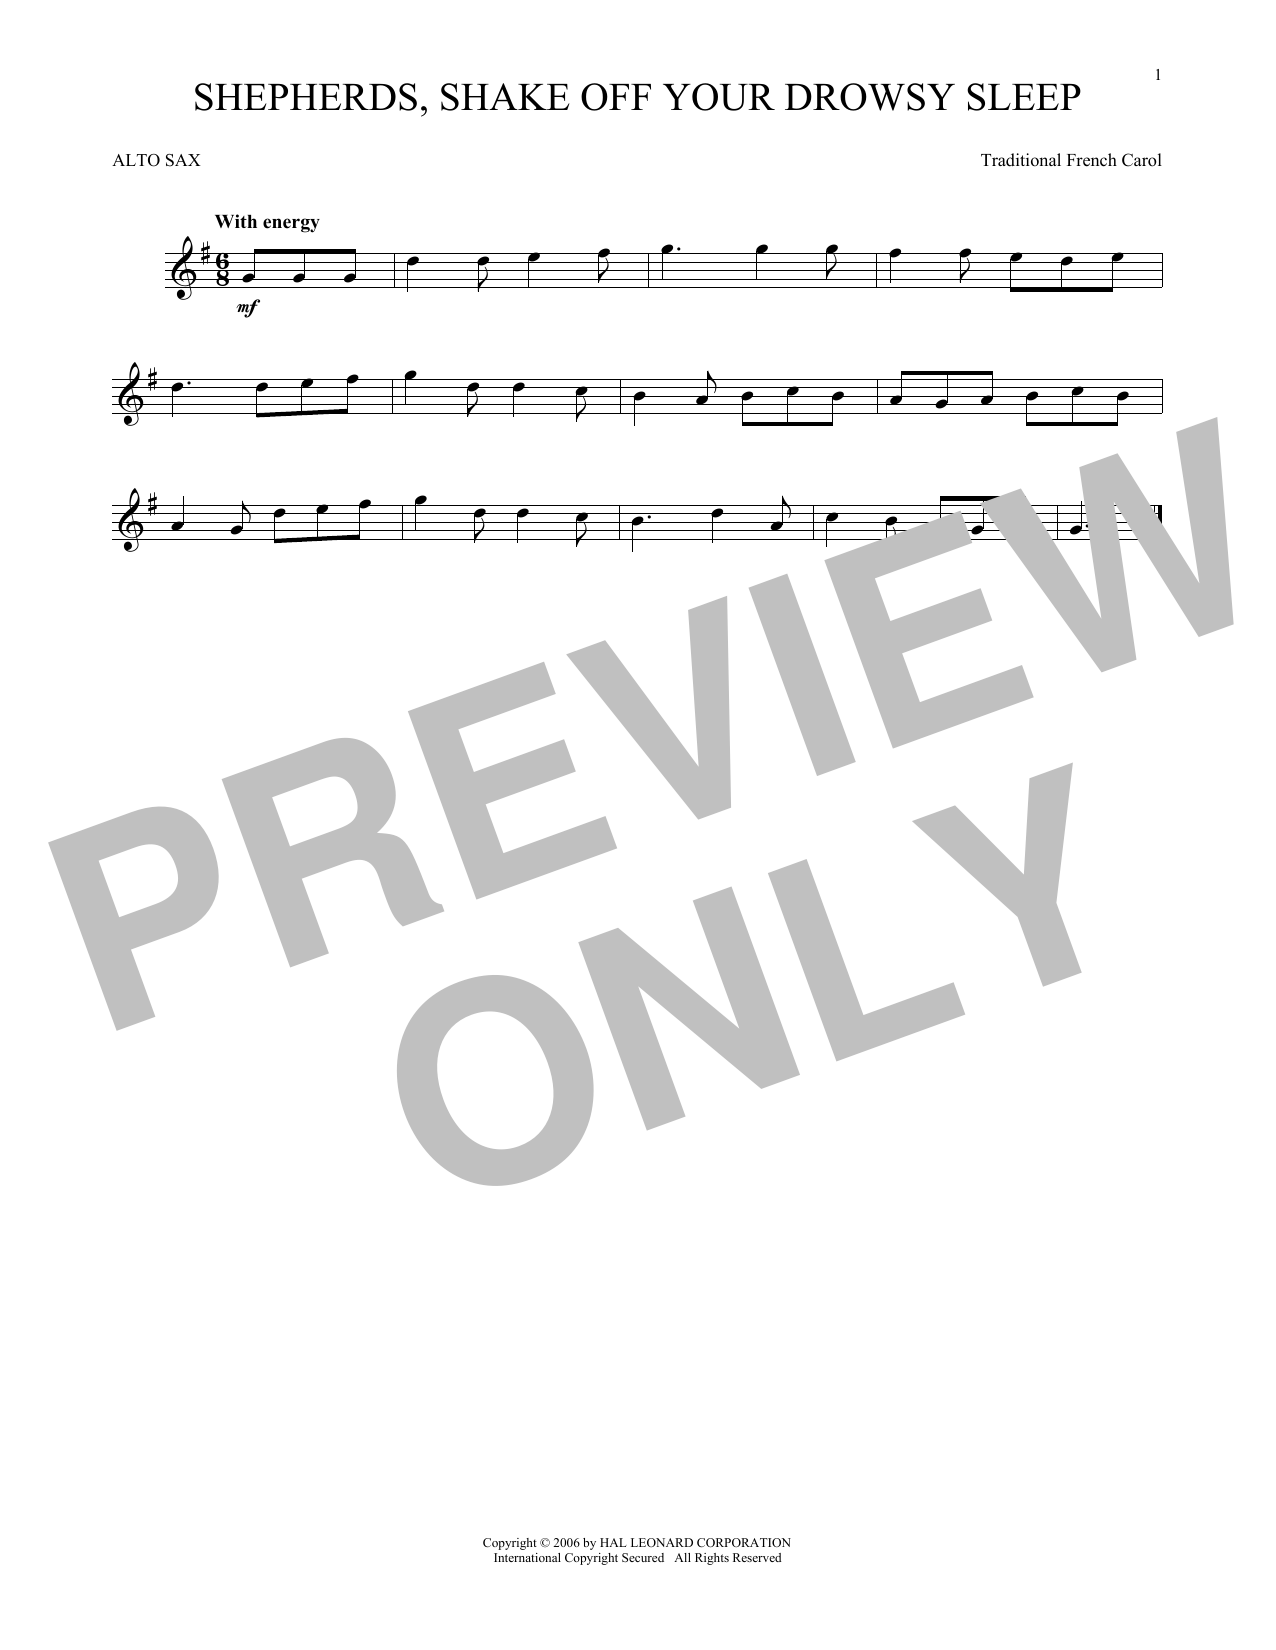 Traditional French Carol Shepherds, Shake Off Your Drowsy Sleep sheet music notes and chords